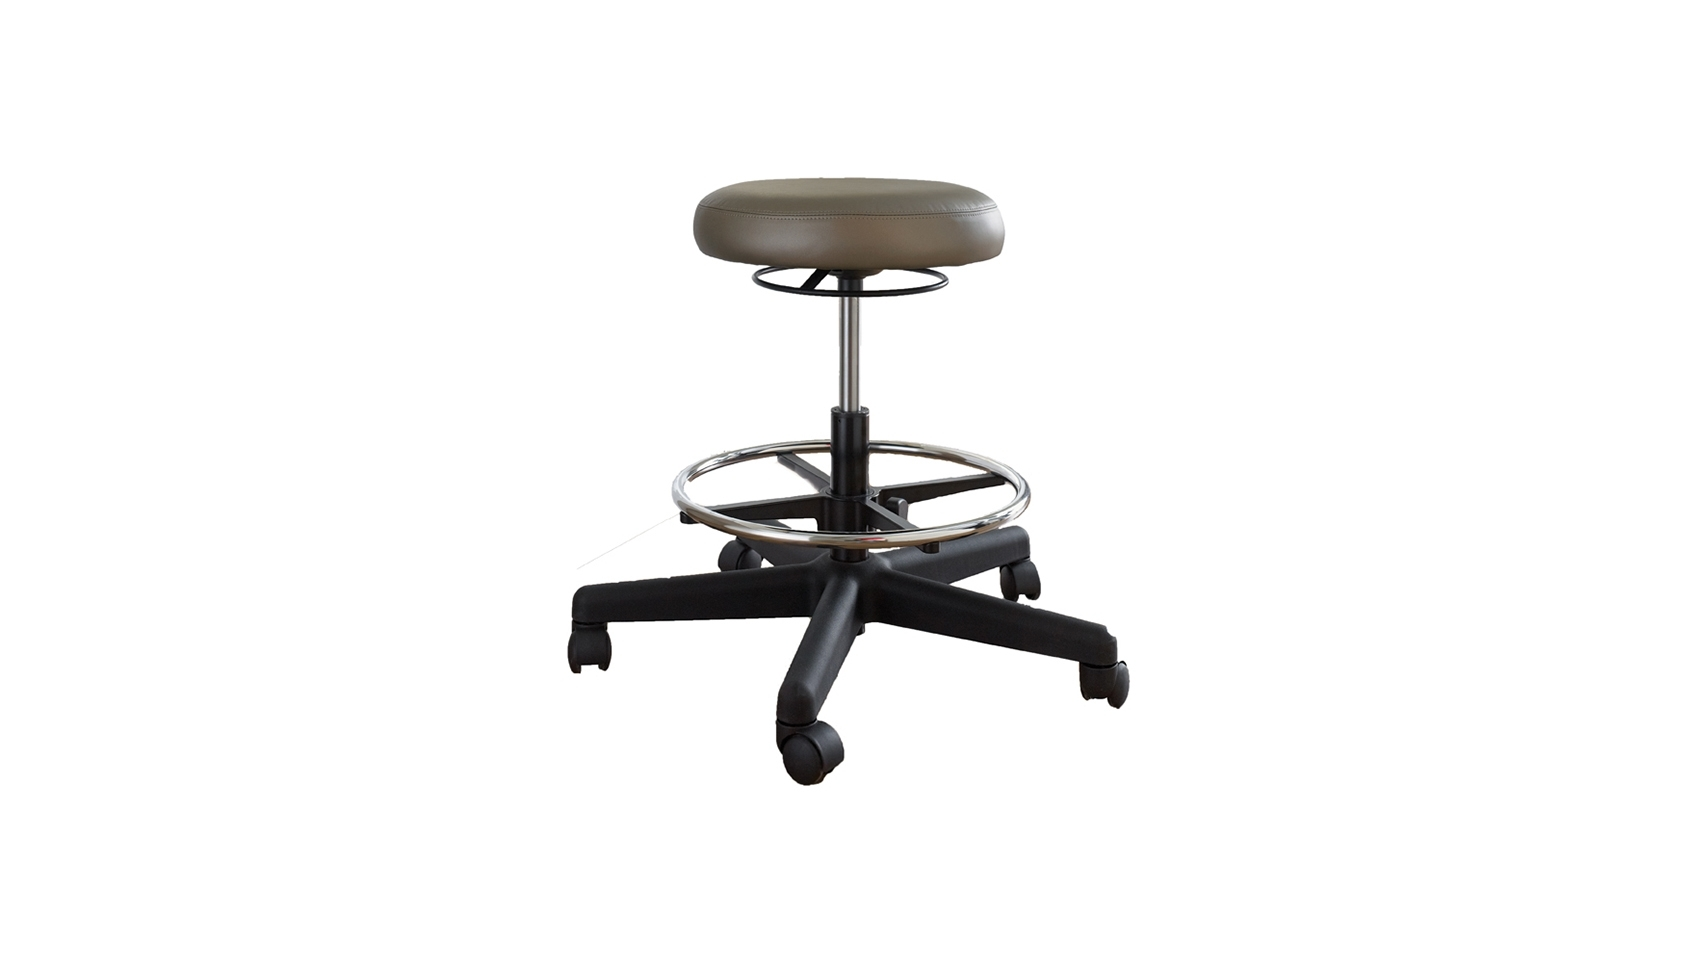 Ofs Car Exam Stool 01